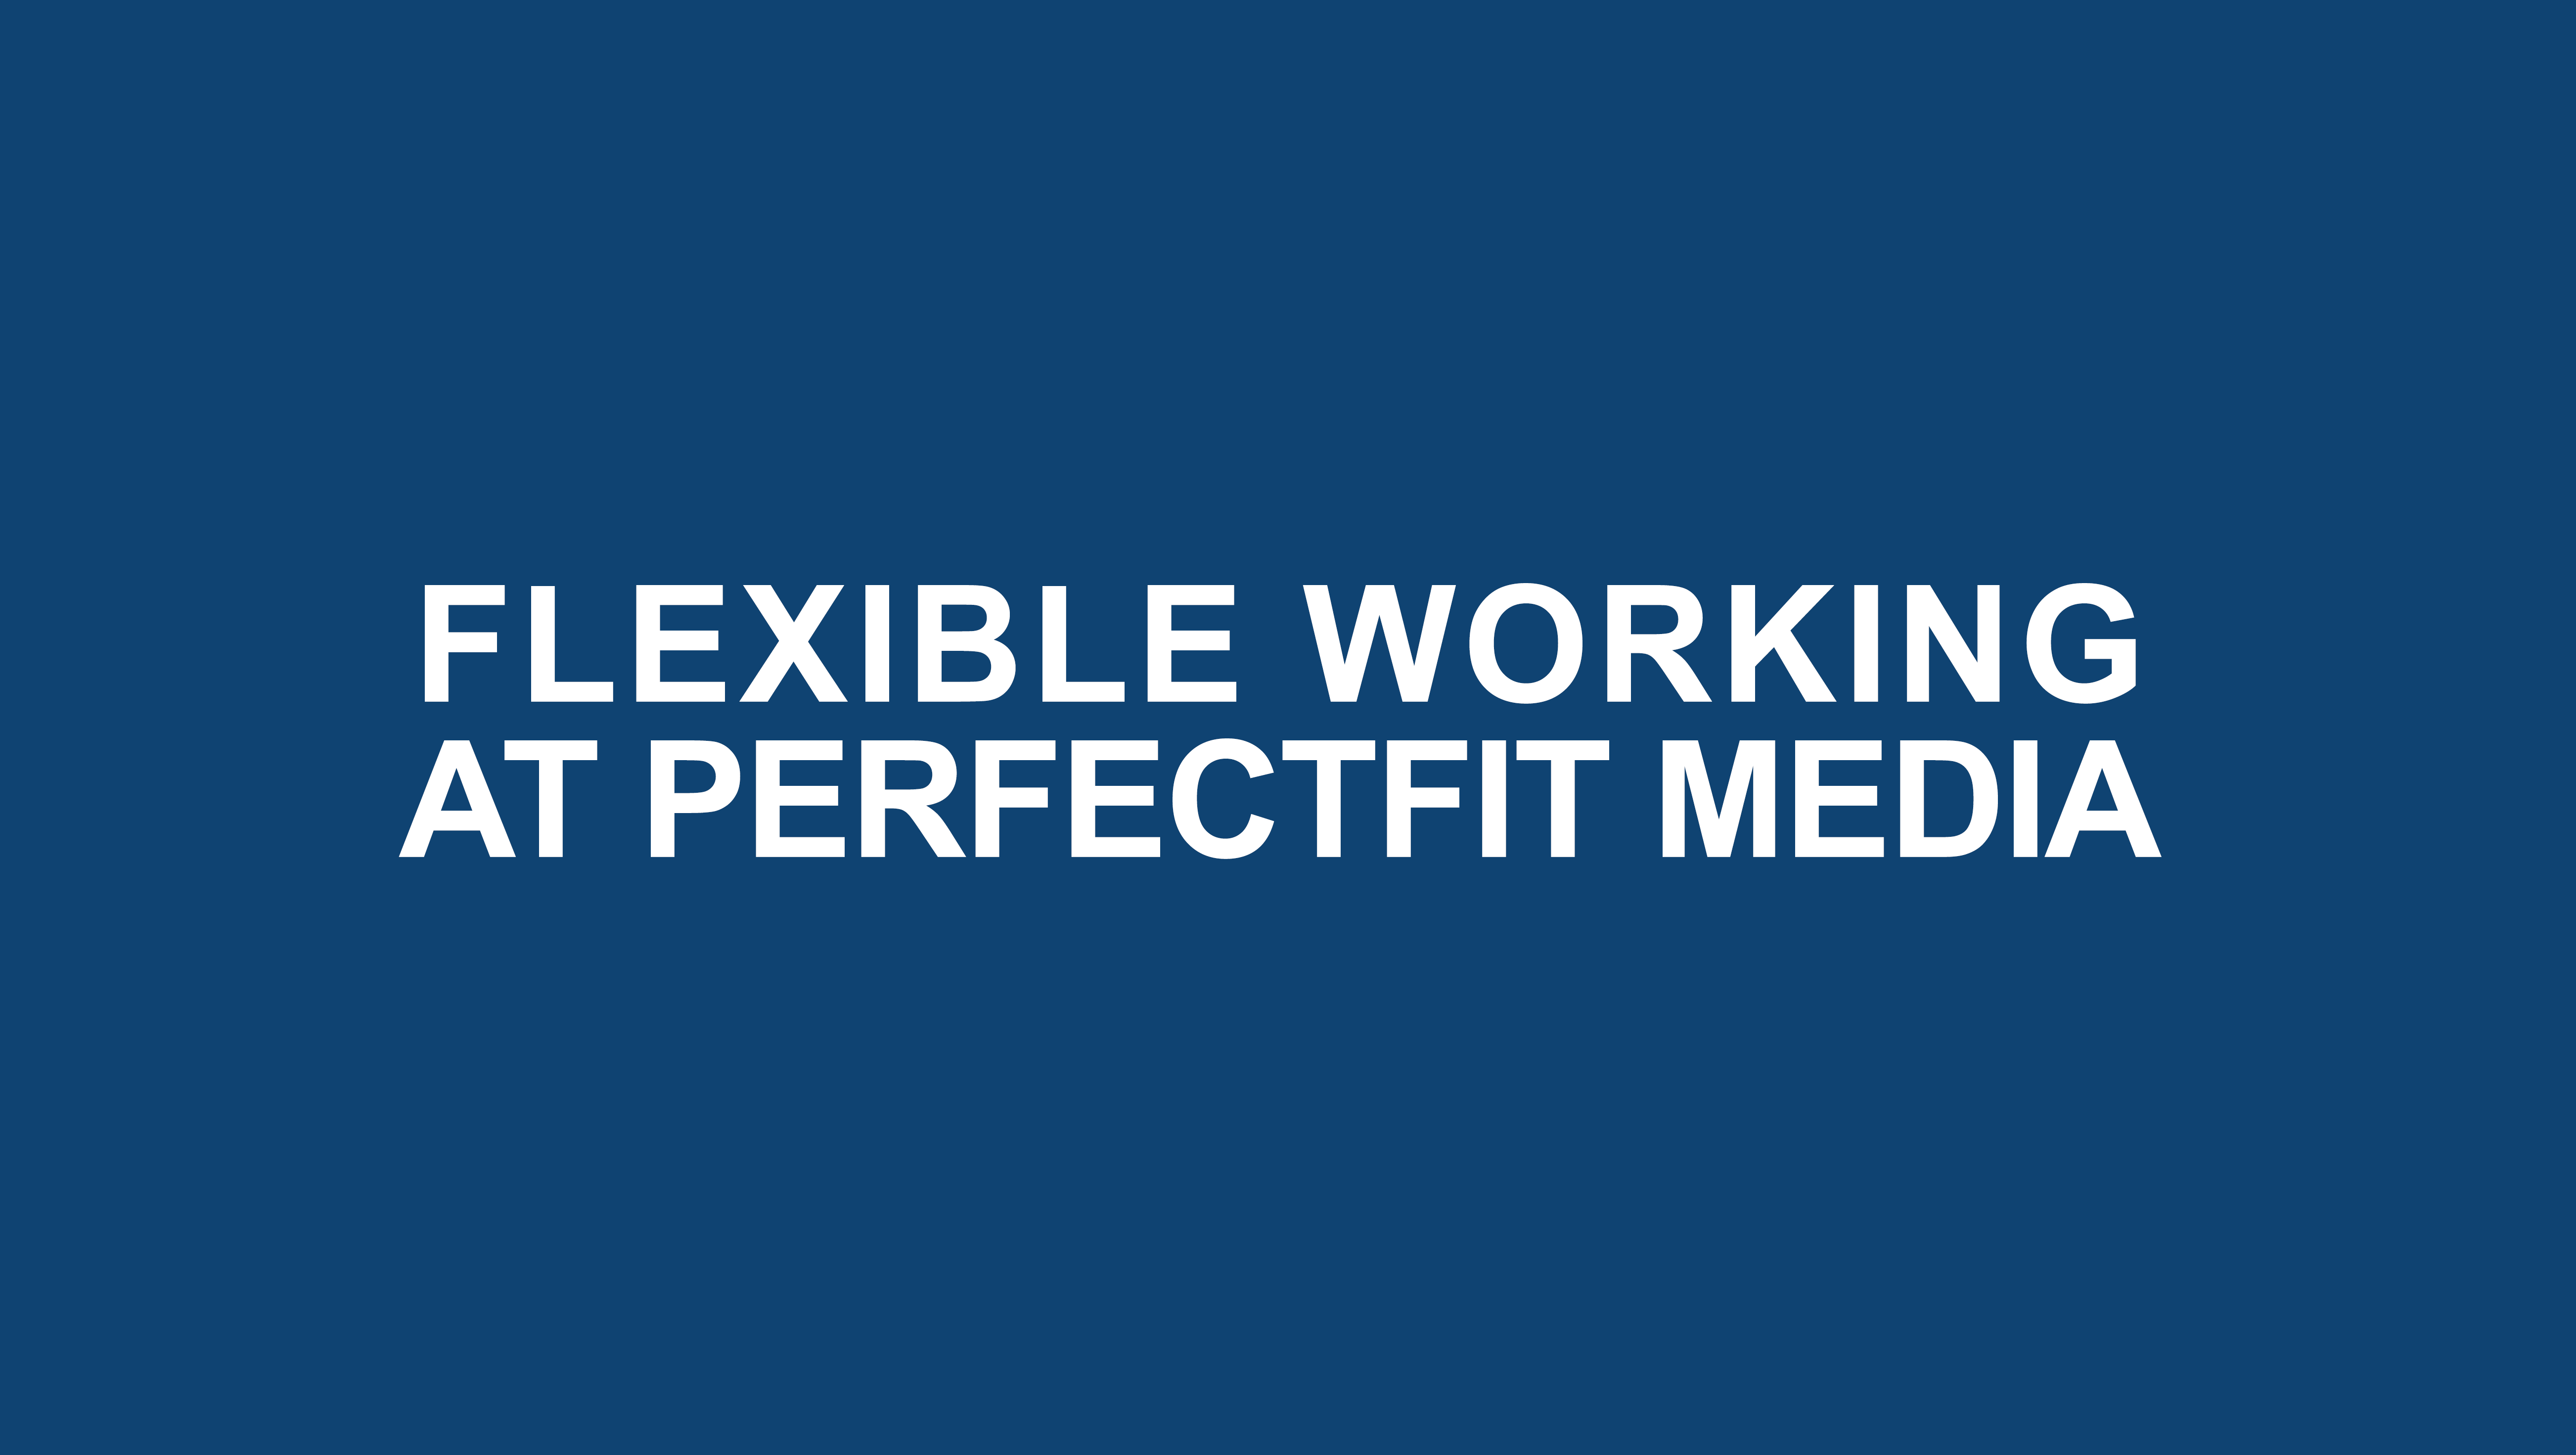 Flexible Working at Perfect Fit Media